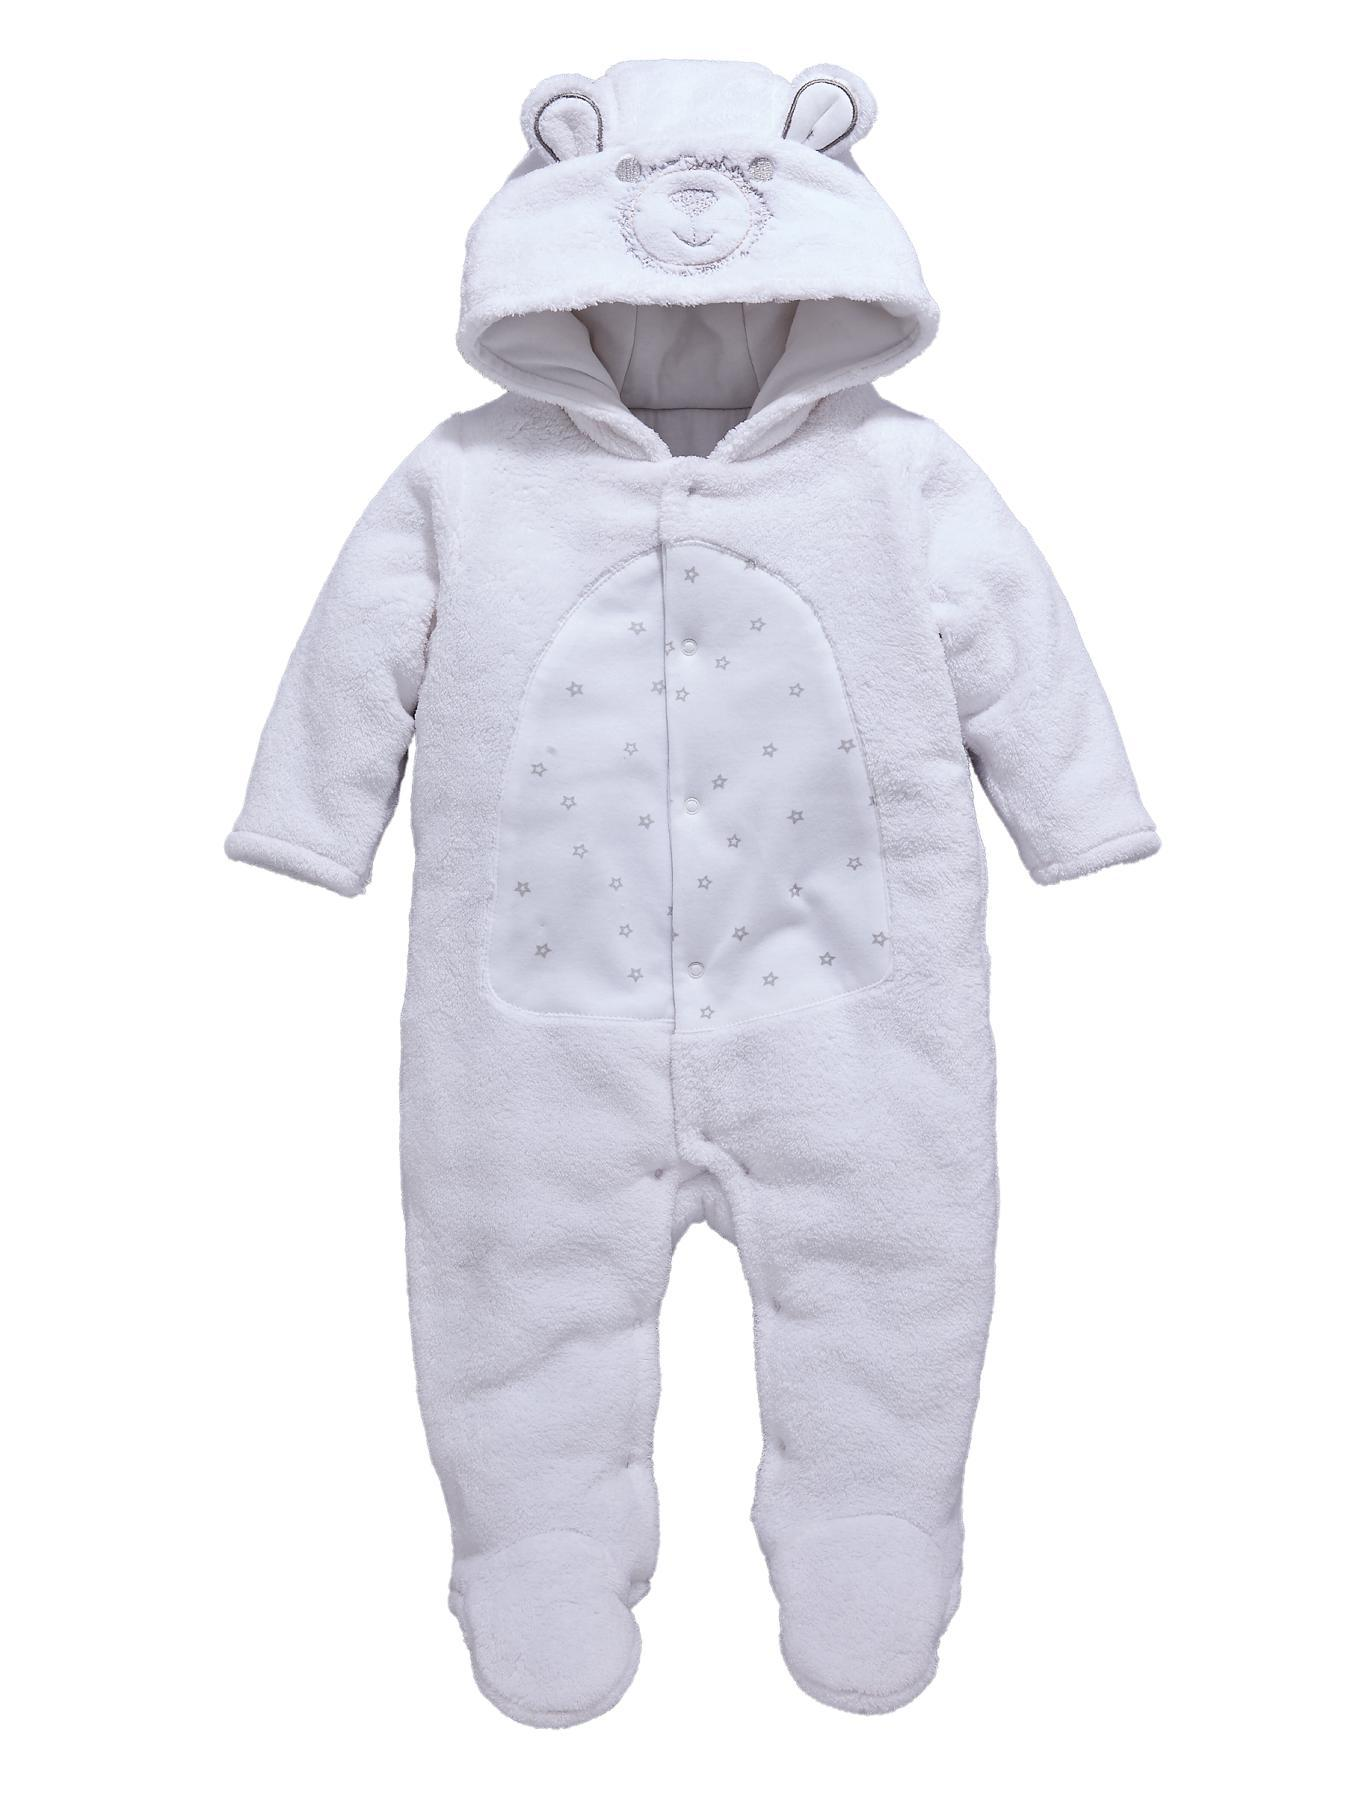 Unisex Baby Bear All-in-One, White